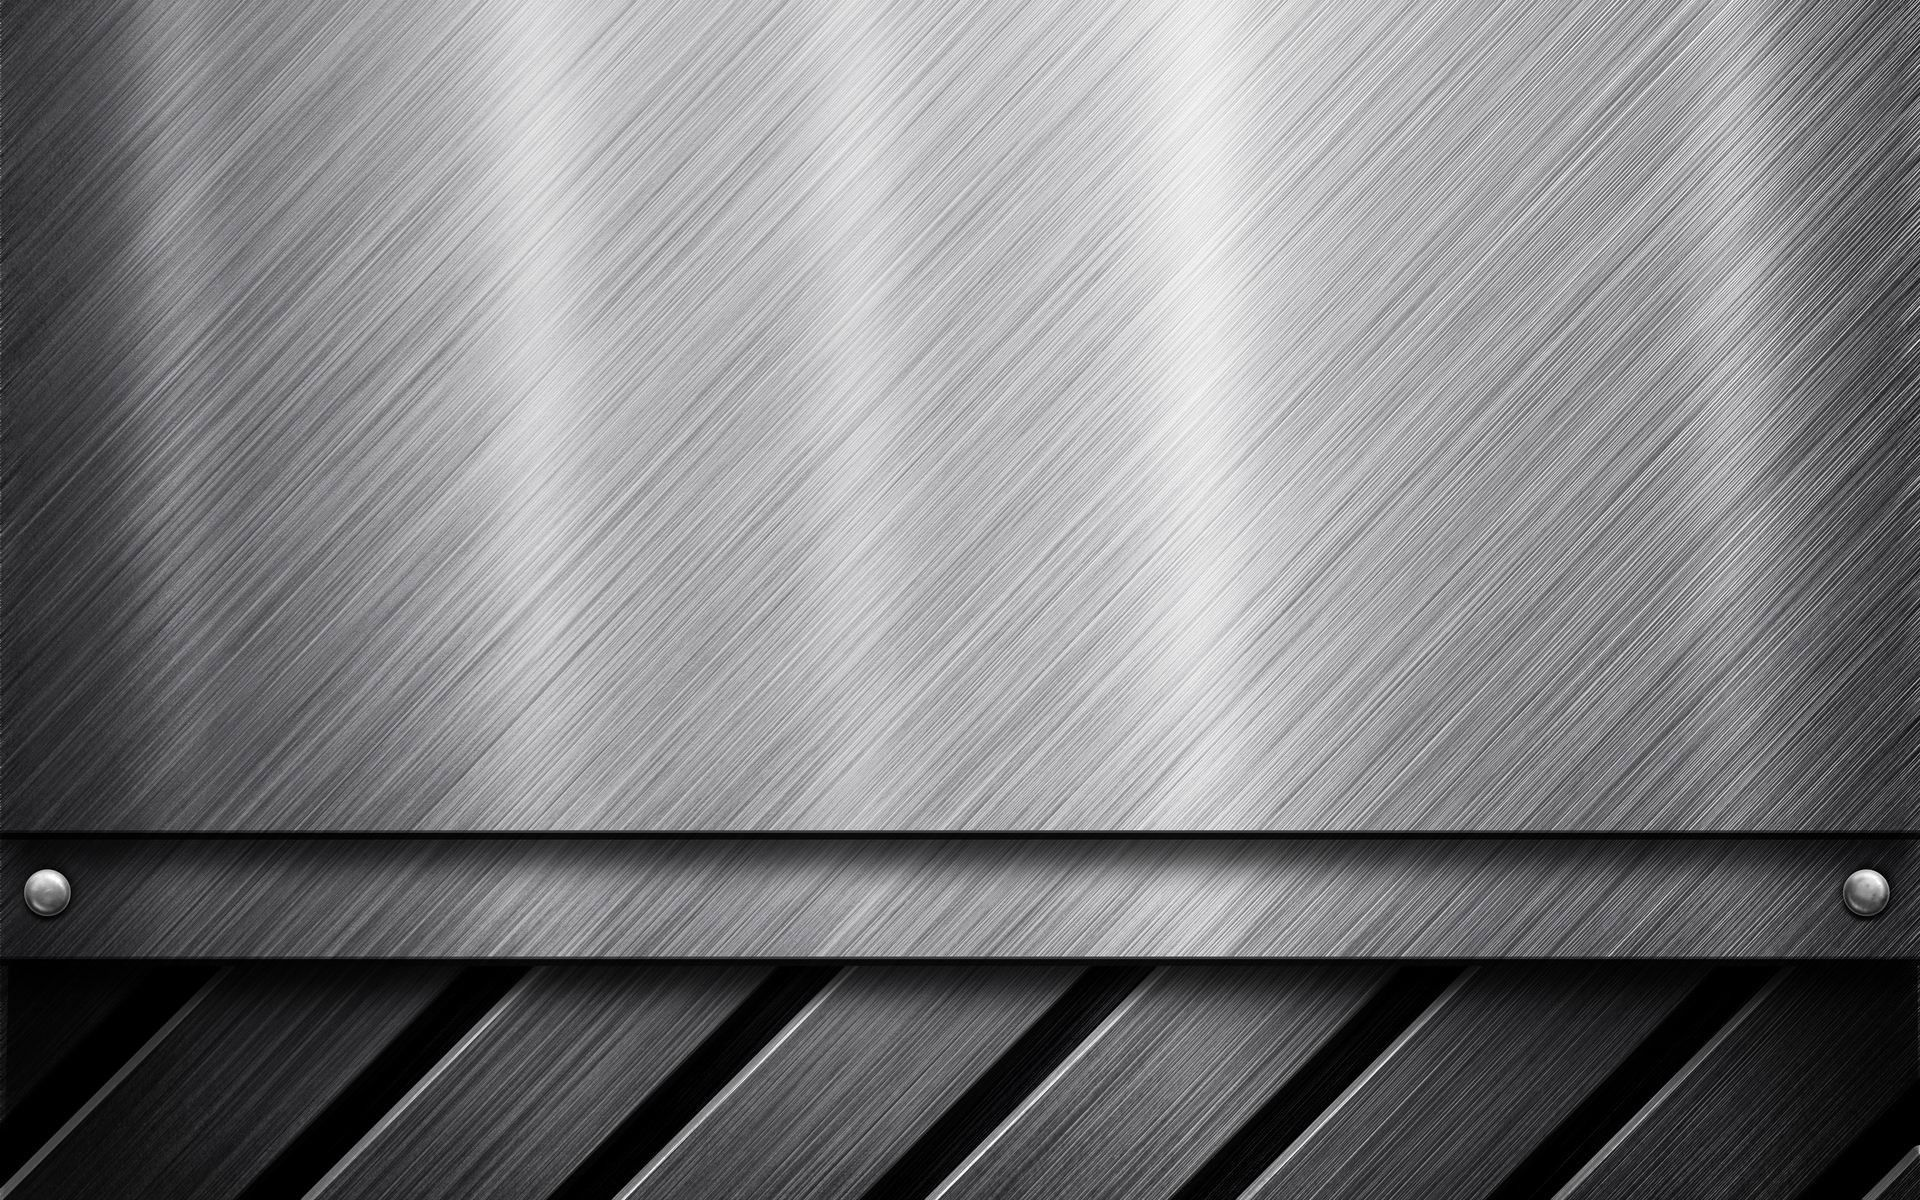 Metal Texture Desktop Background Wallpapers For HD